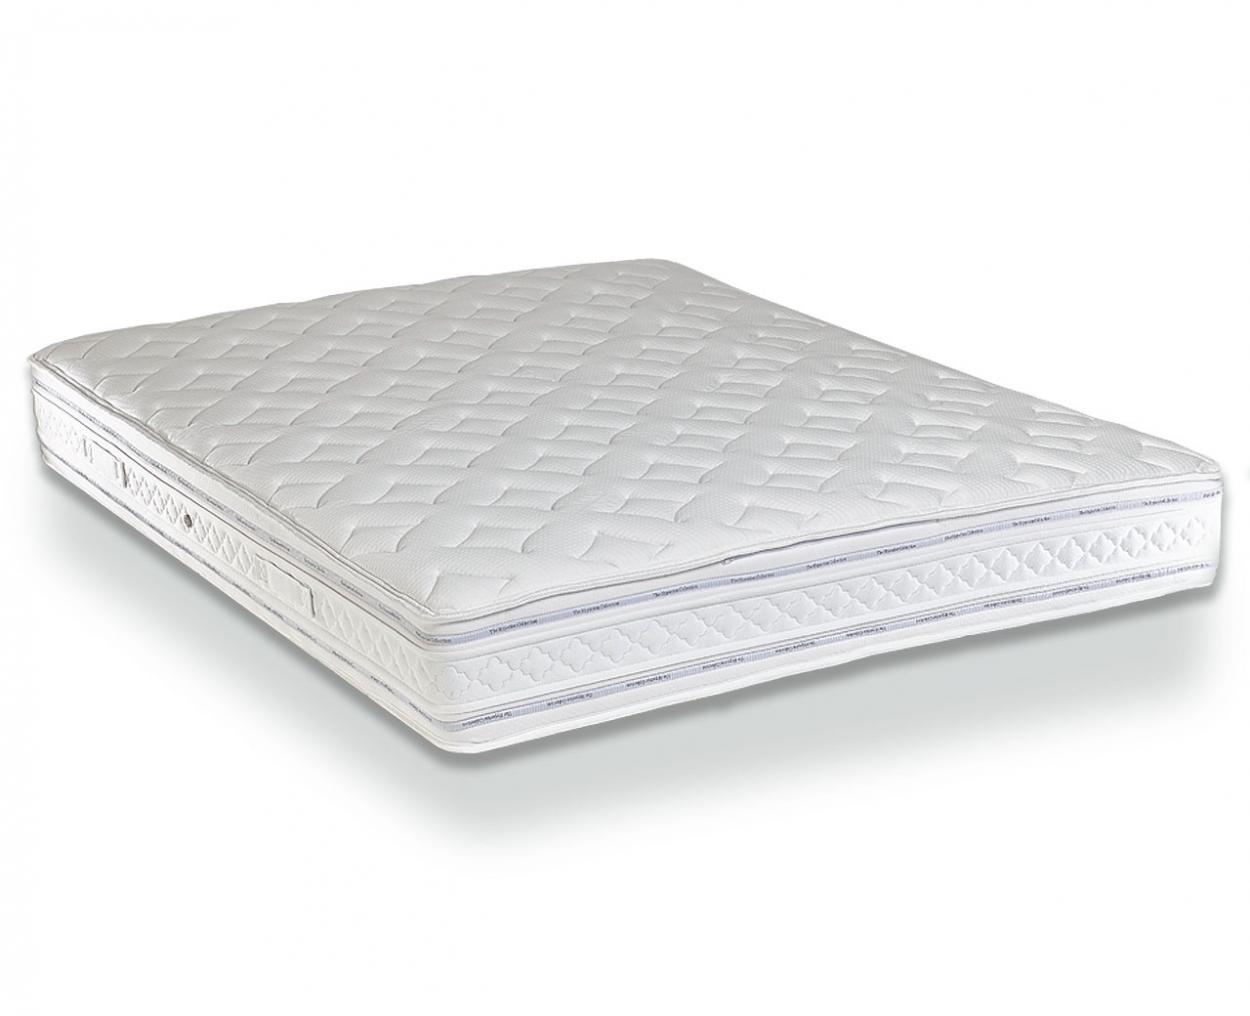 CandiaStrom - Mattress ORION - HYPERION COLLECTION - General Image